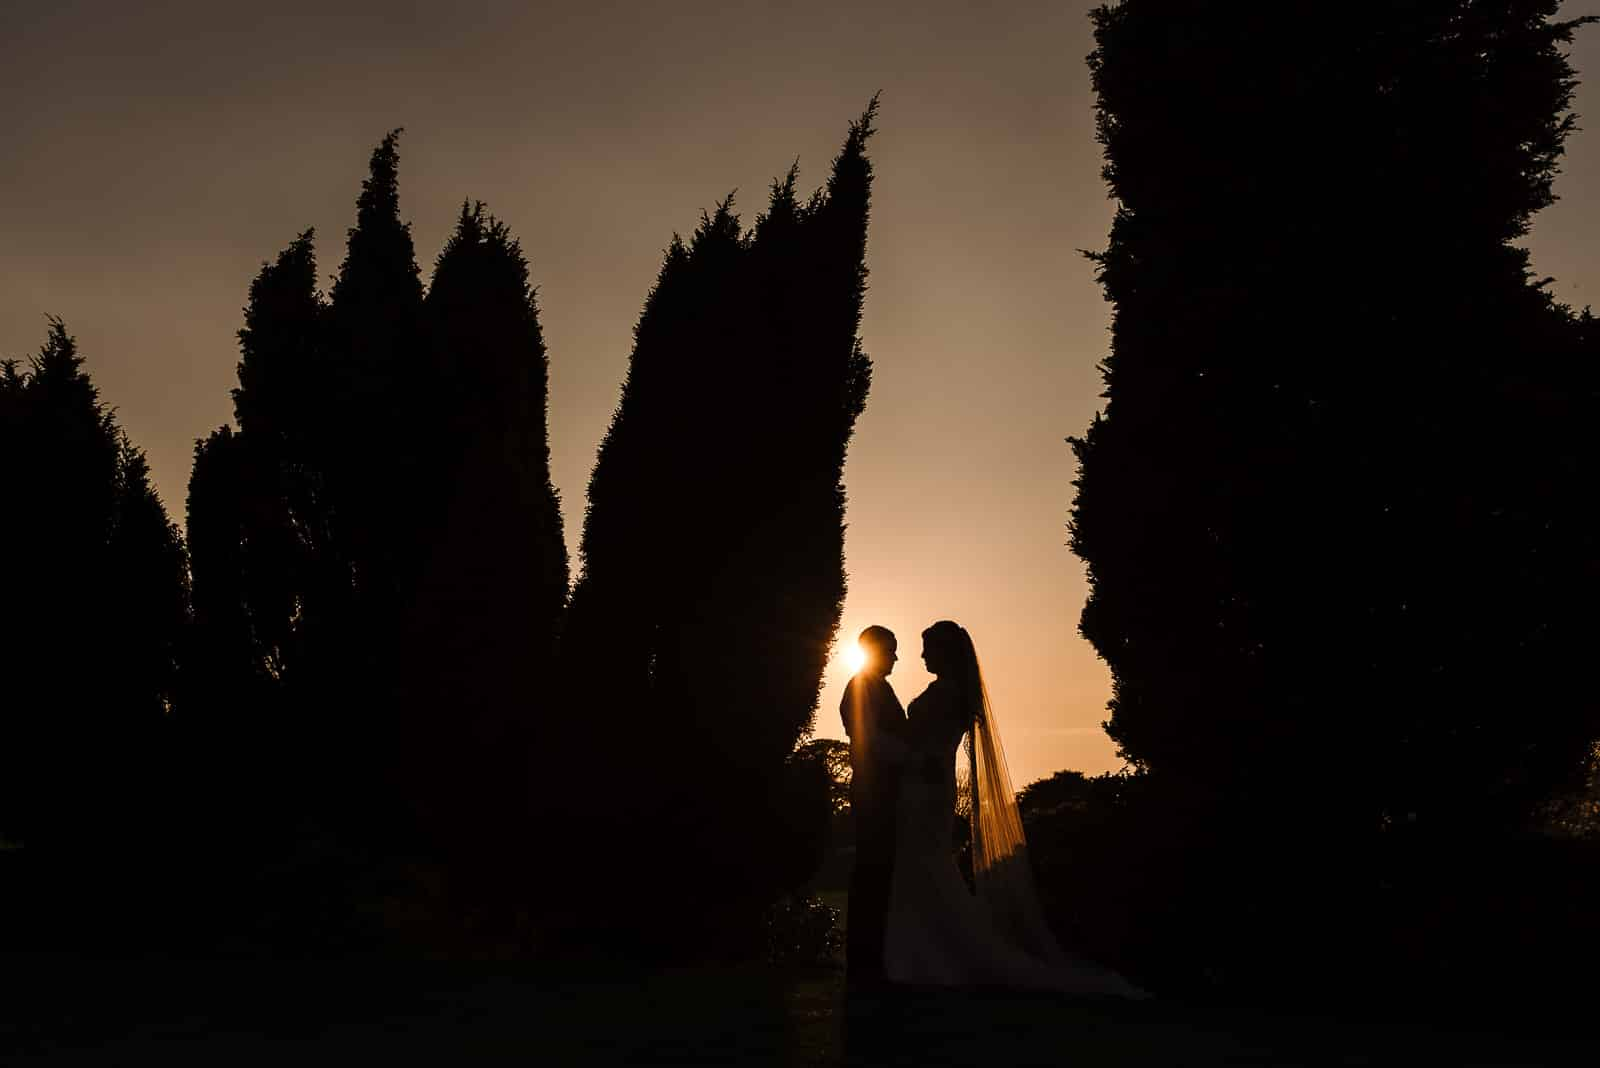 Silhouette at Mottram Hall during sunset